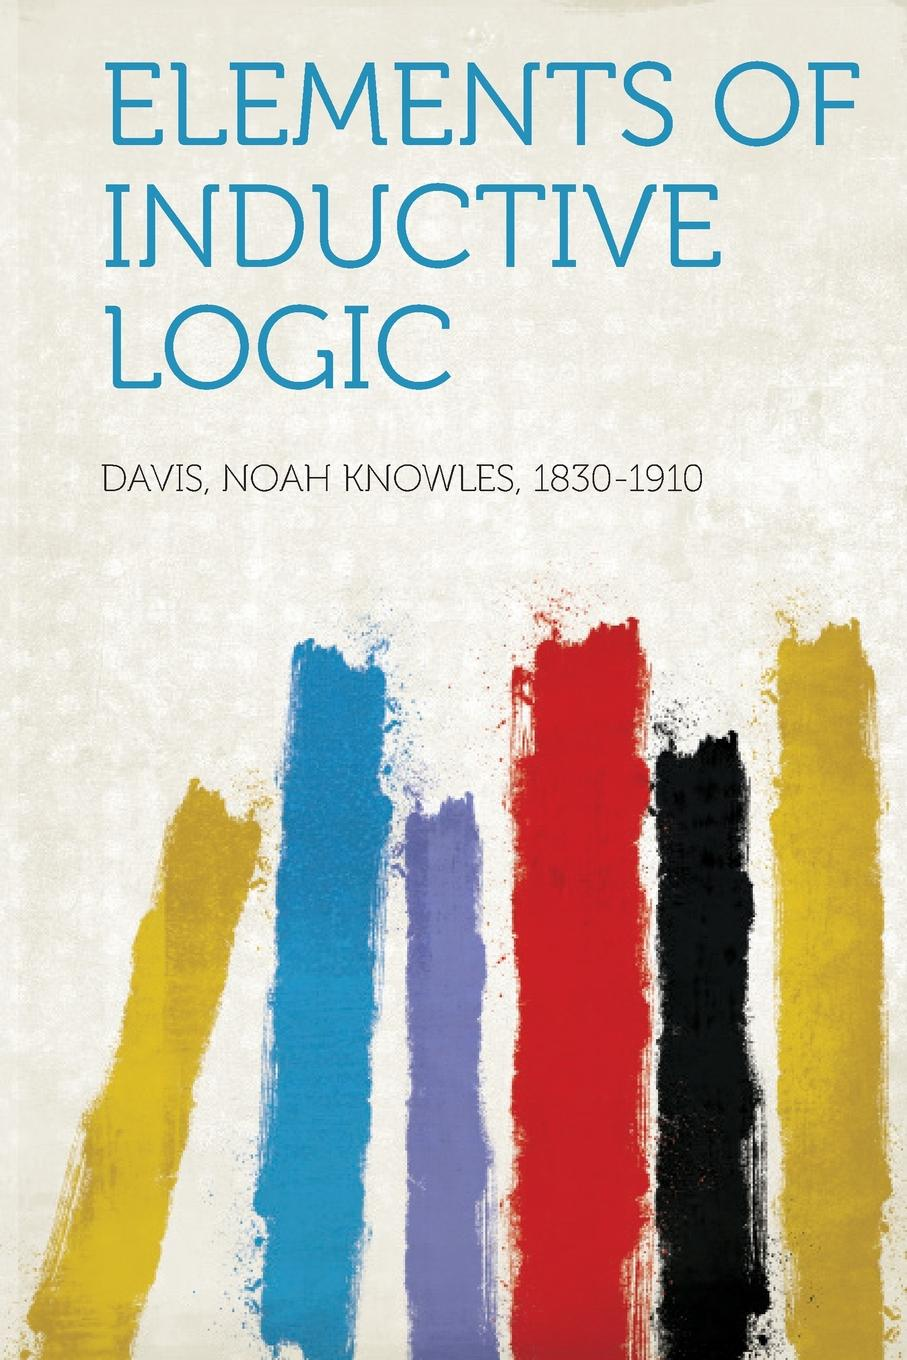 Davis Noah Knowles 1830-1910 Elements of Inductive Logic